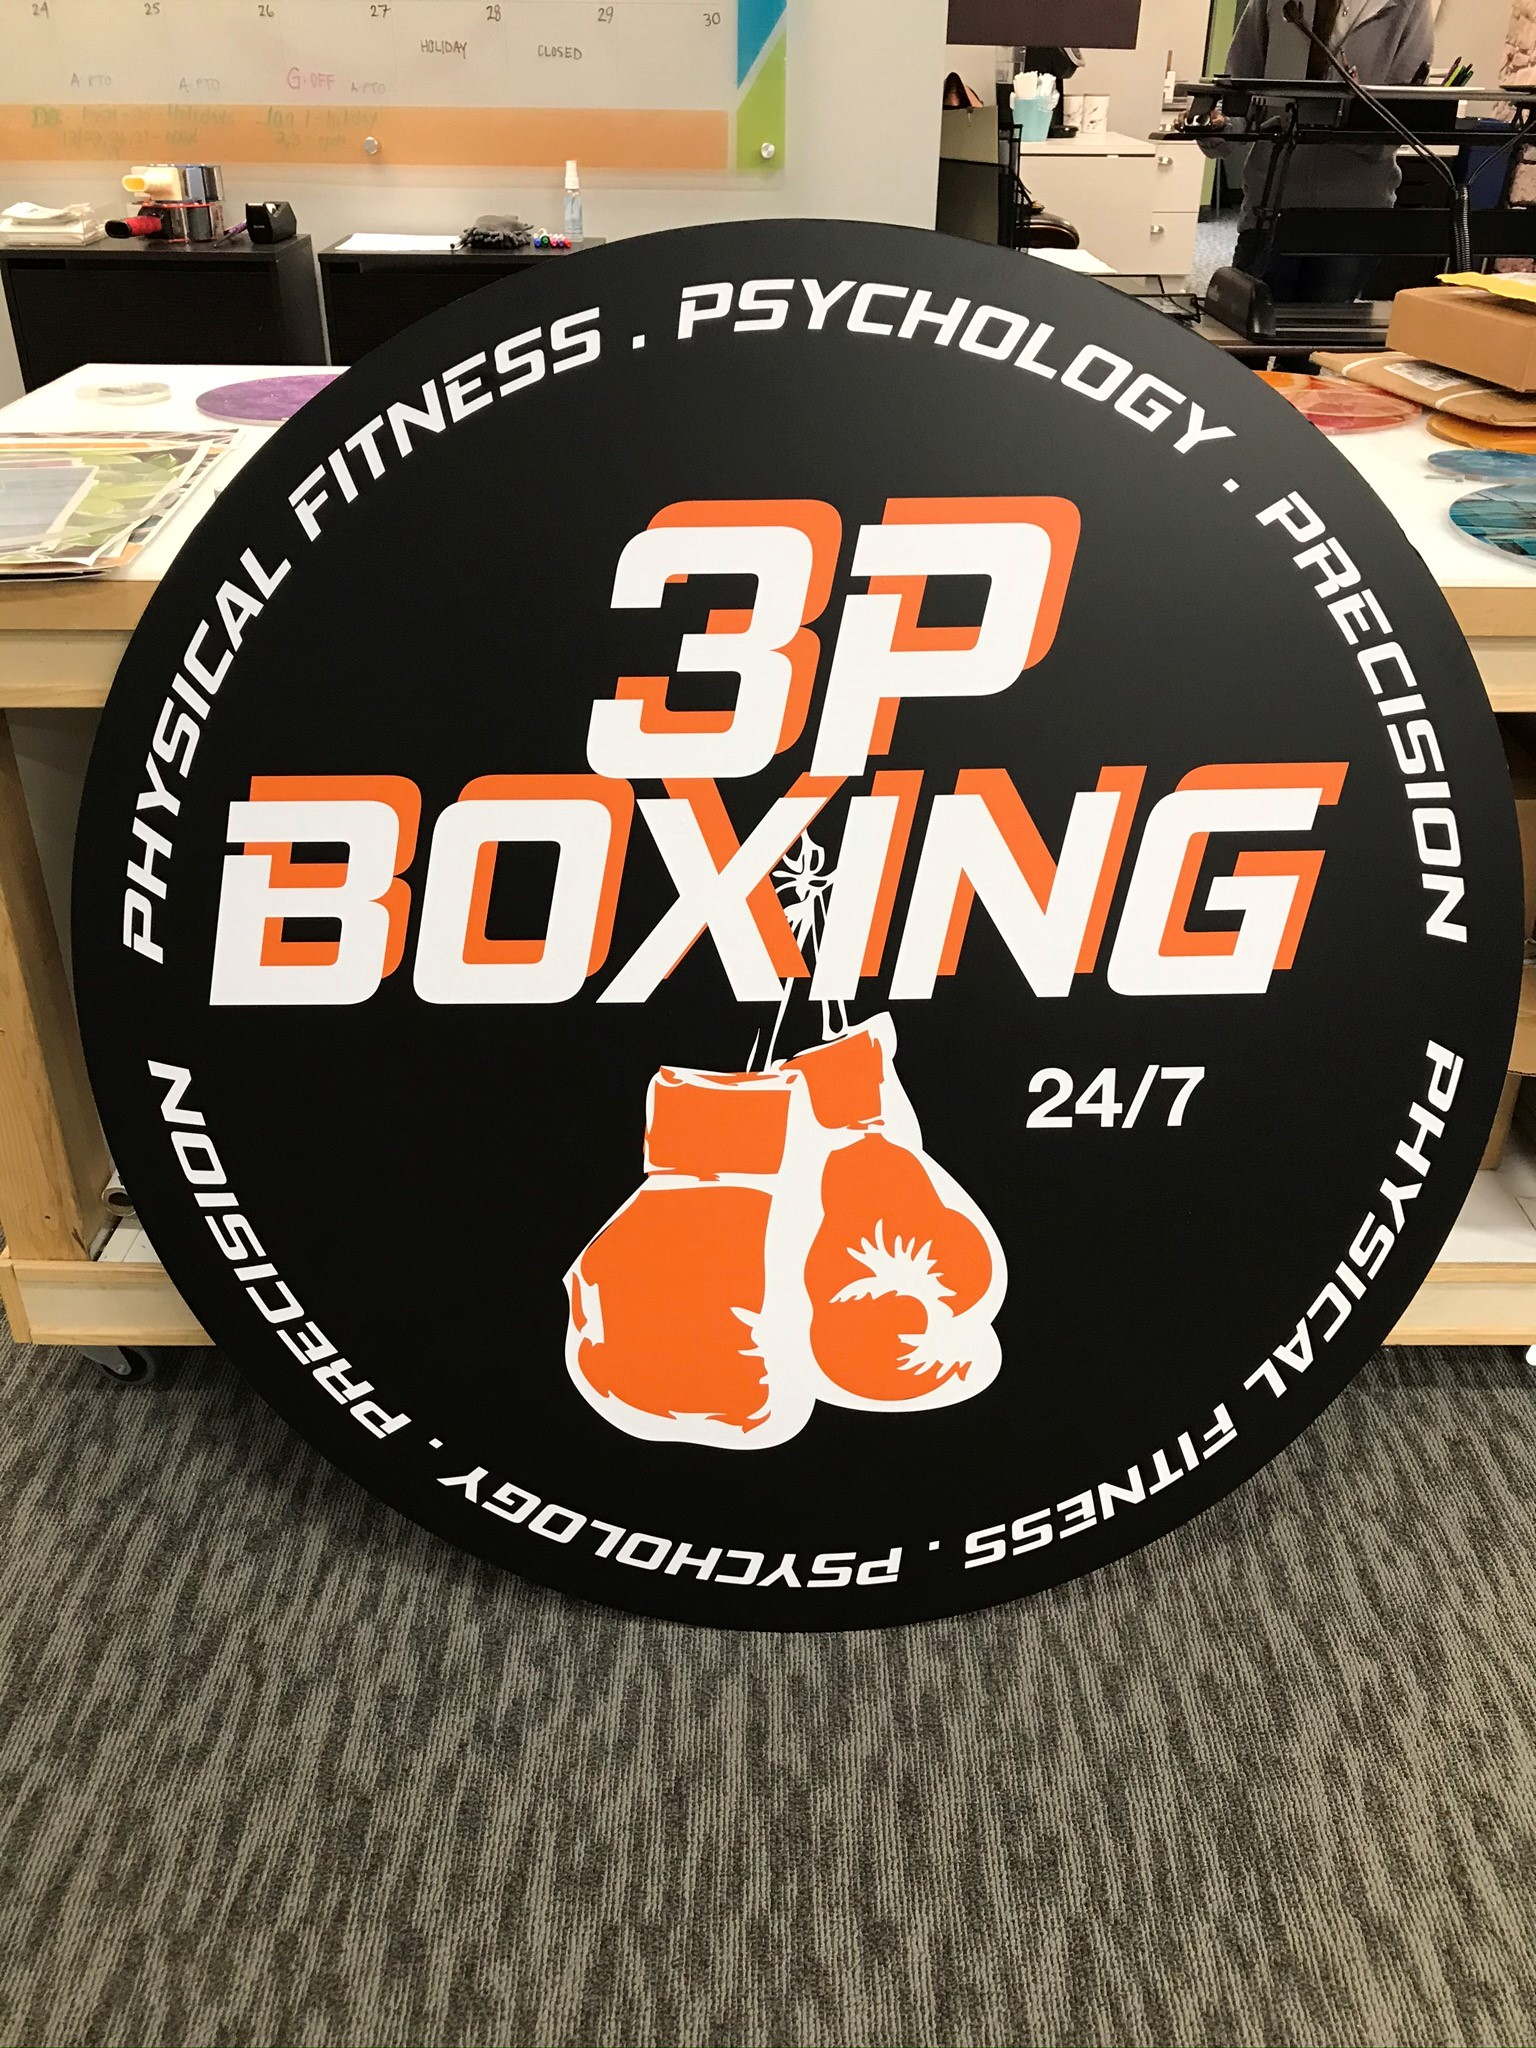 Metal Signs and Displays | Exterior & Outdoor Signage | Gyms, Health Clubs, Fitness Facilities | Woodbury, MN